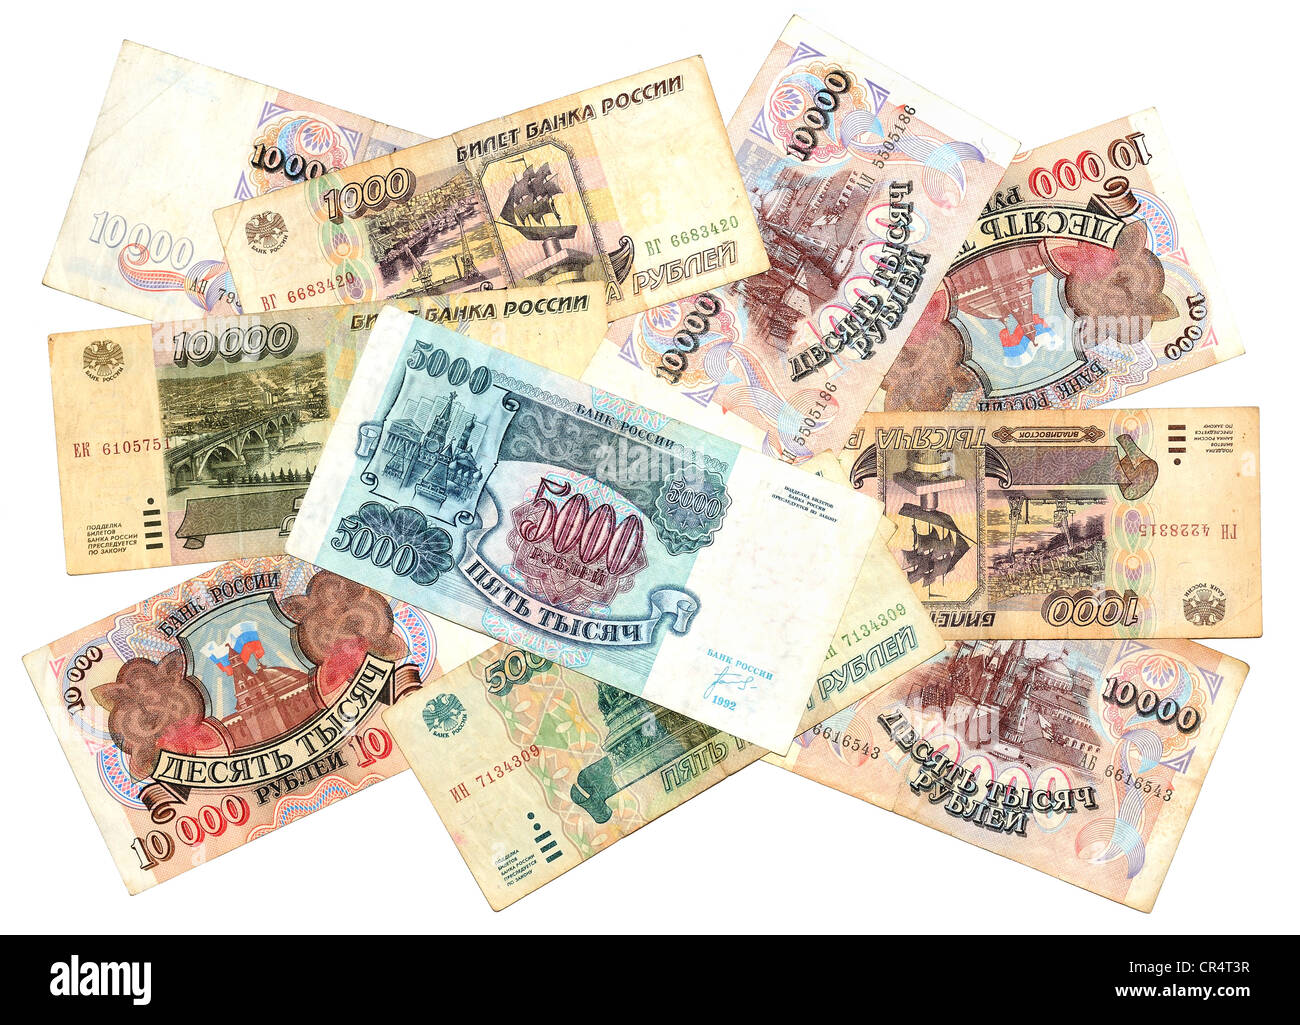 Historic banknote, Russian rubles 1992-1995 - Stock Image